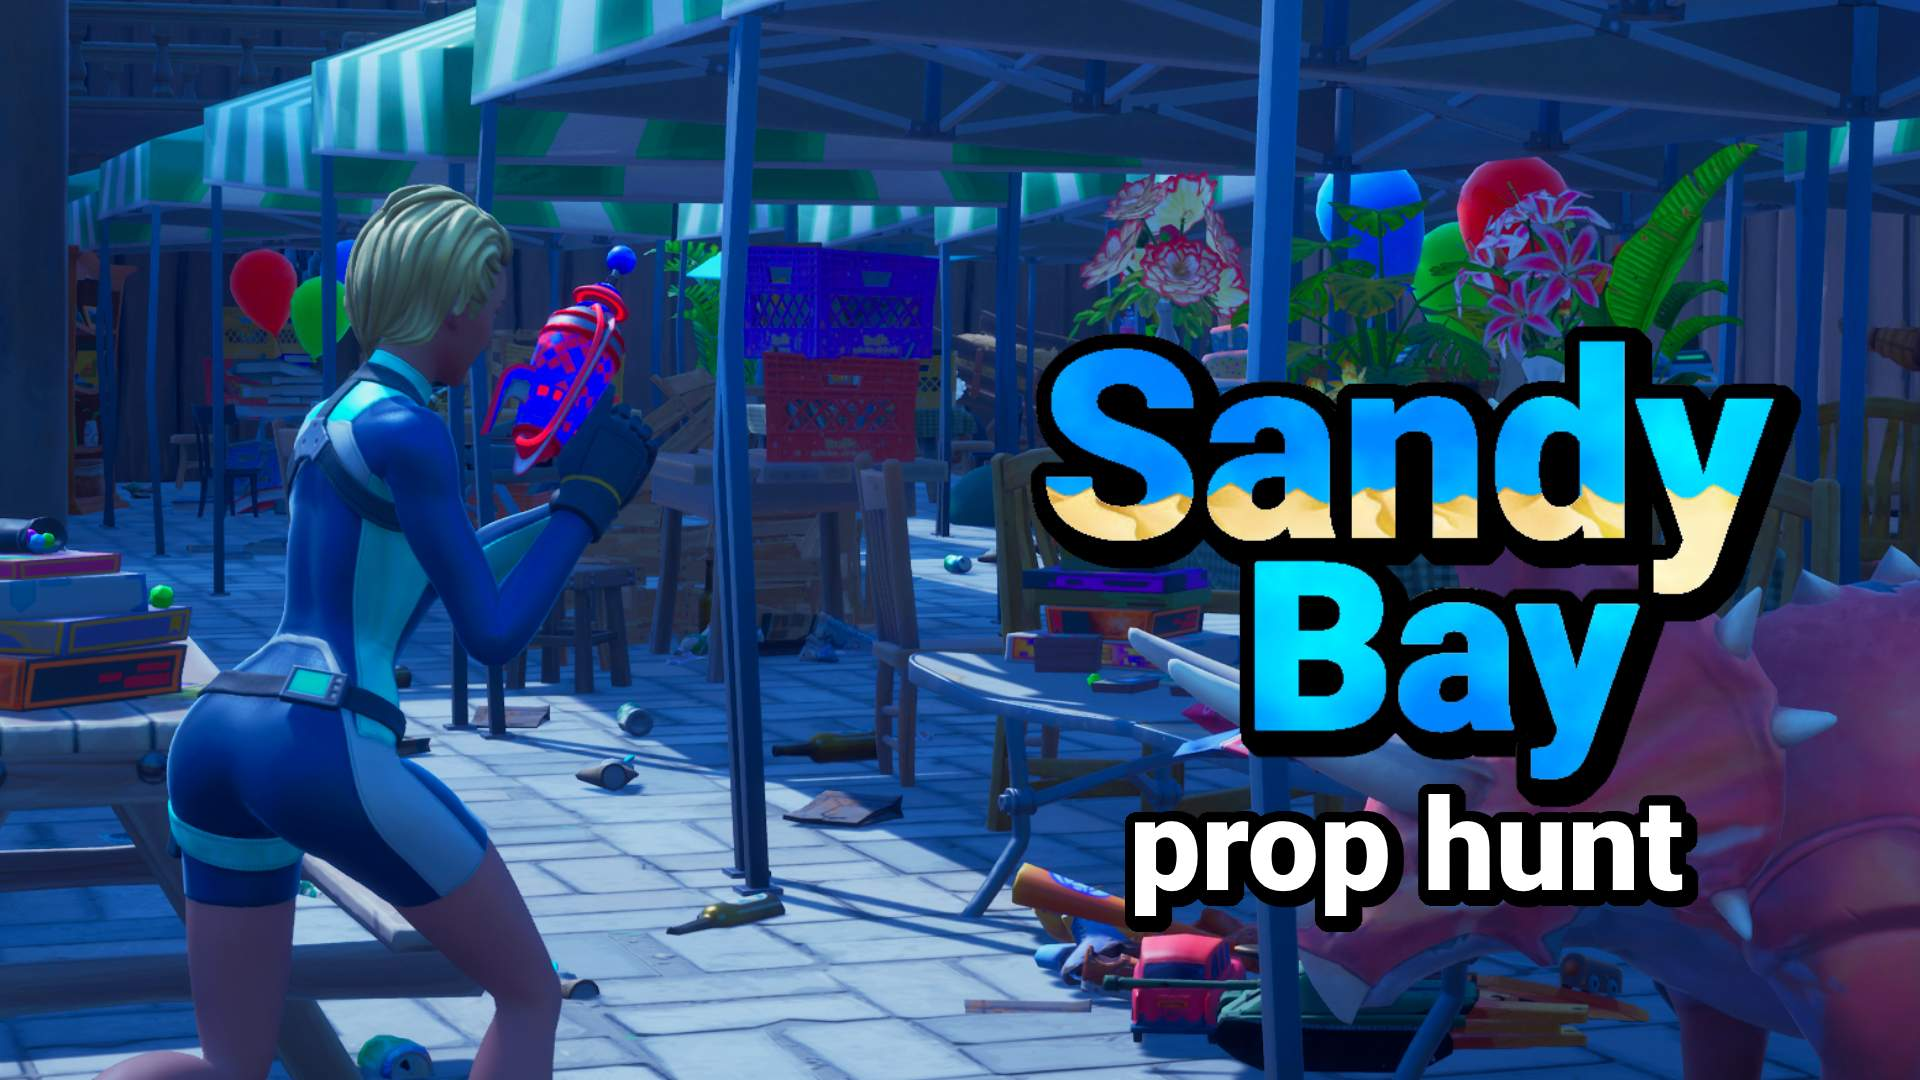 SANDY BAY - PROP HUNT